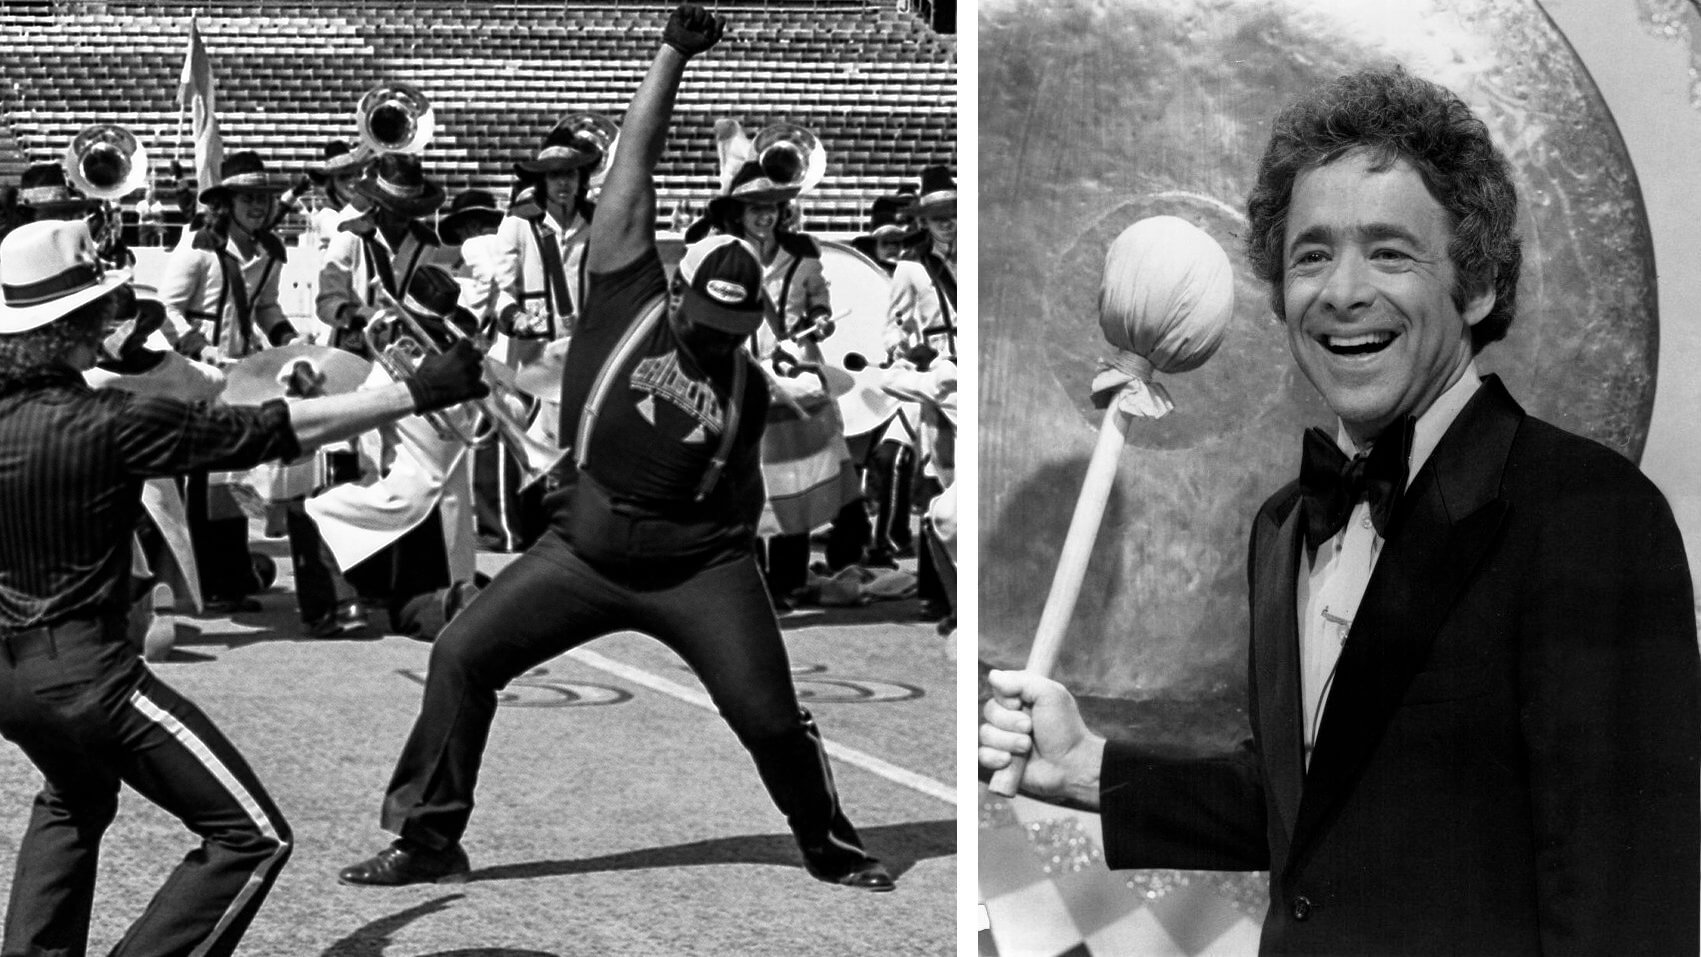 Banging the drum corps gong for Chuck Barris